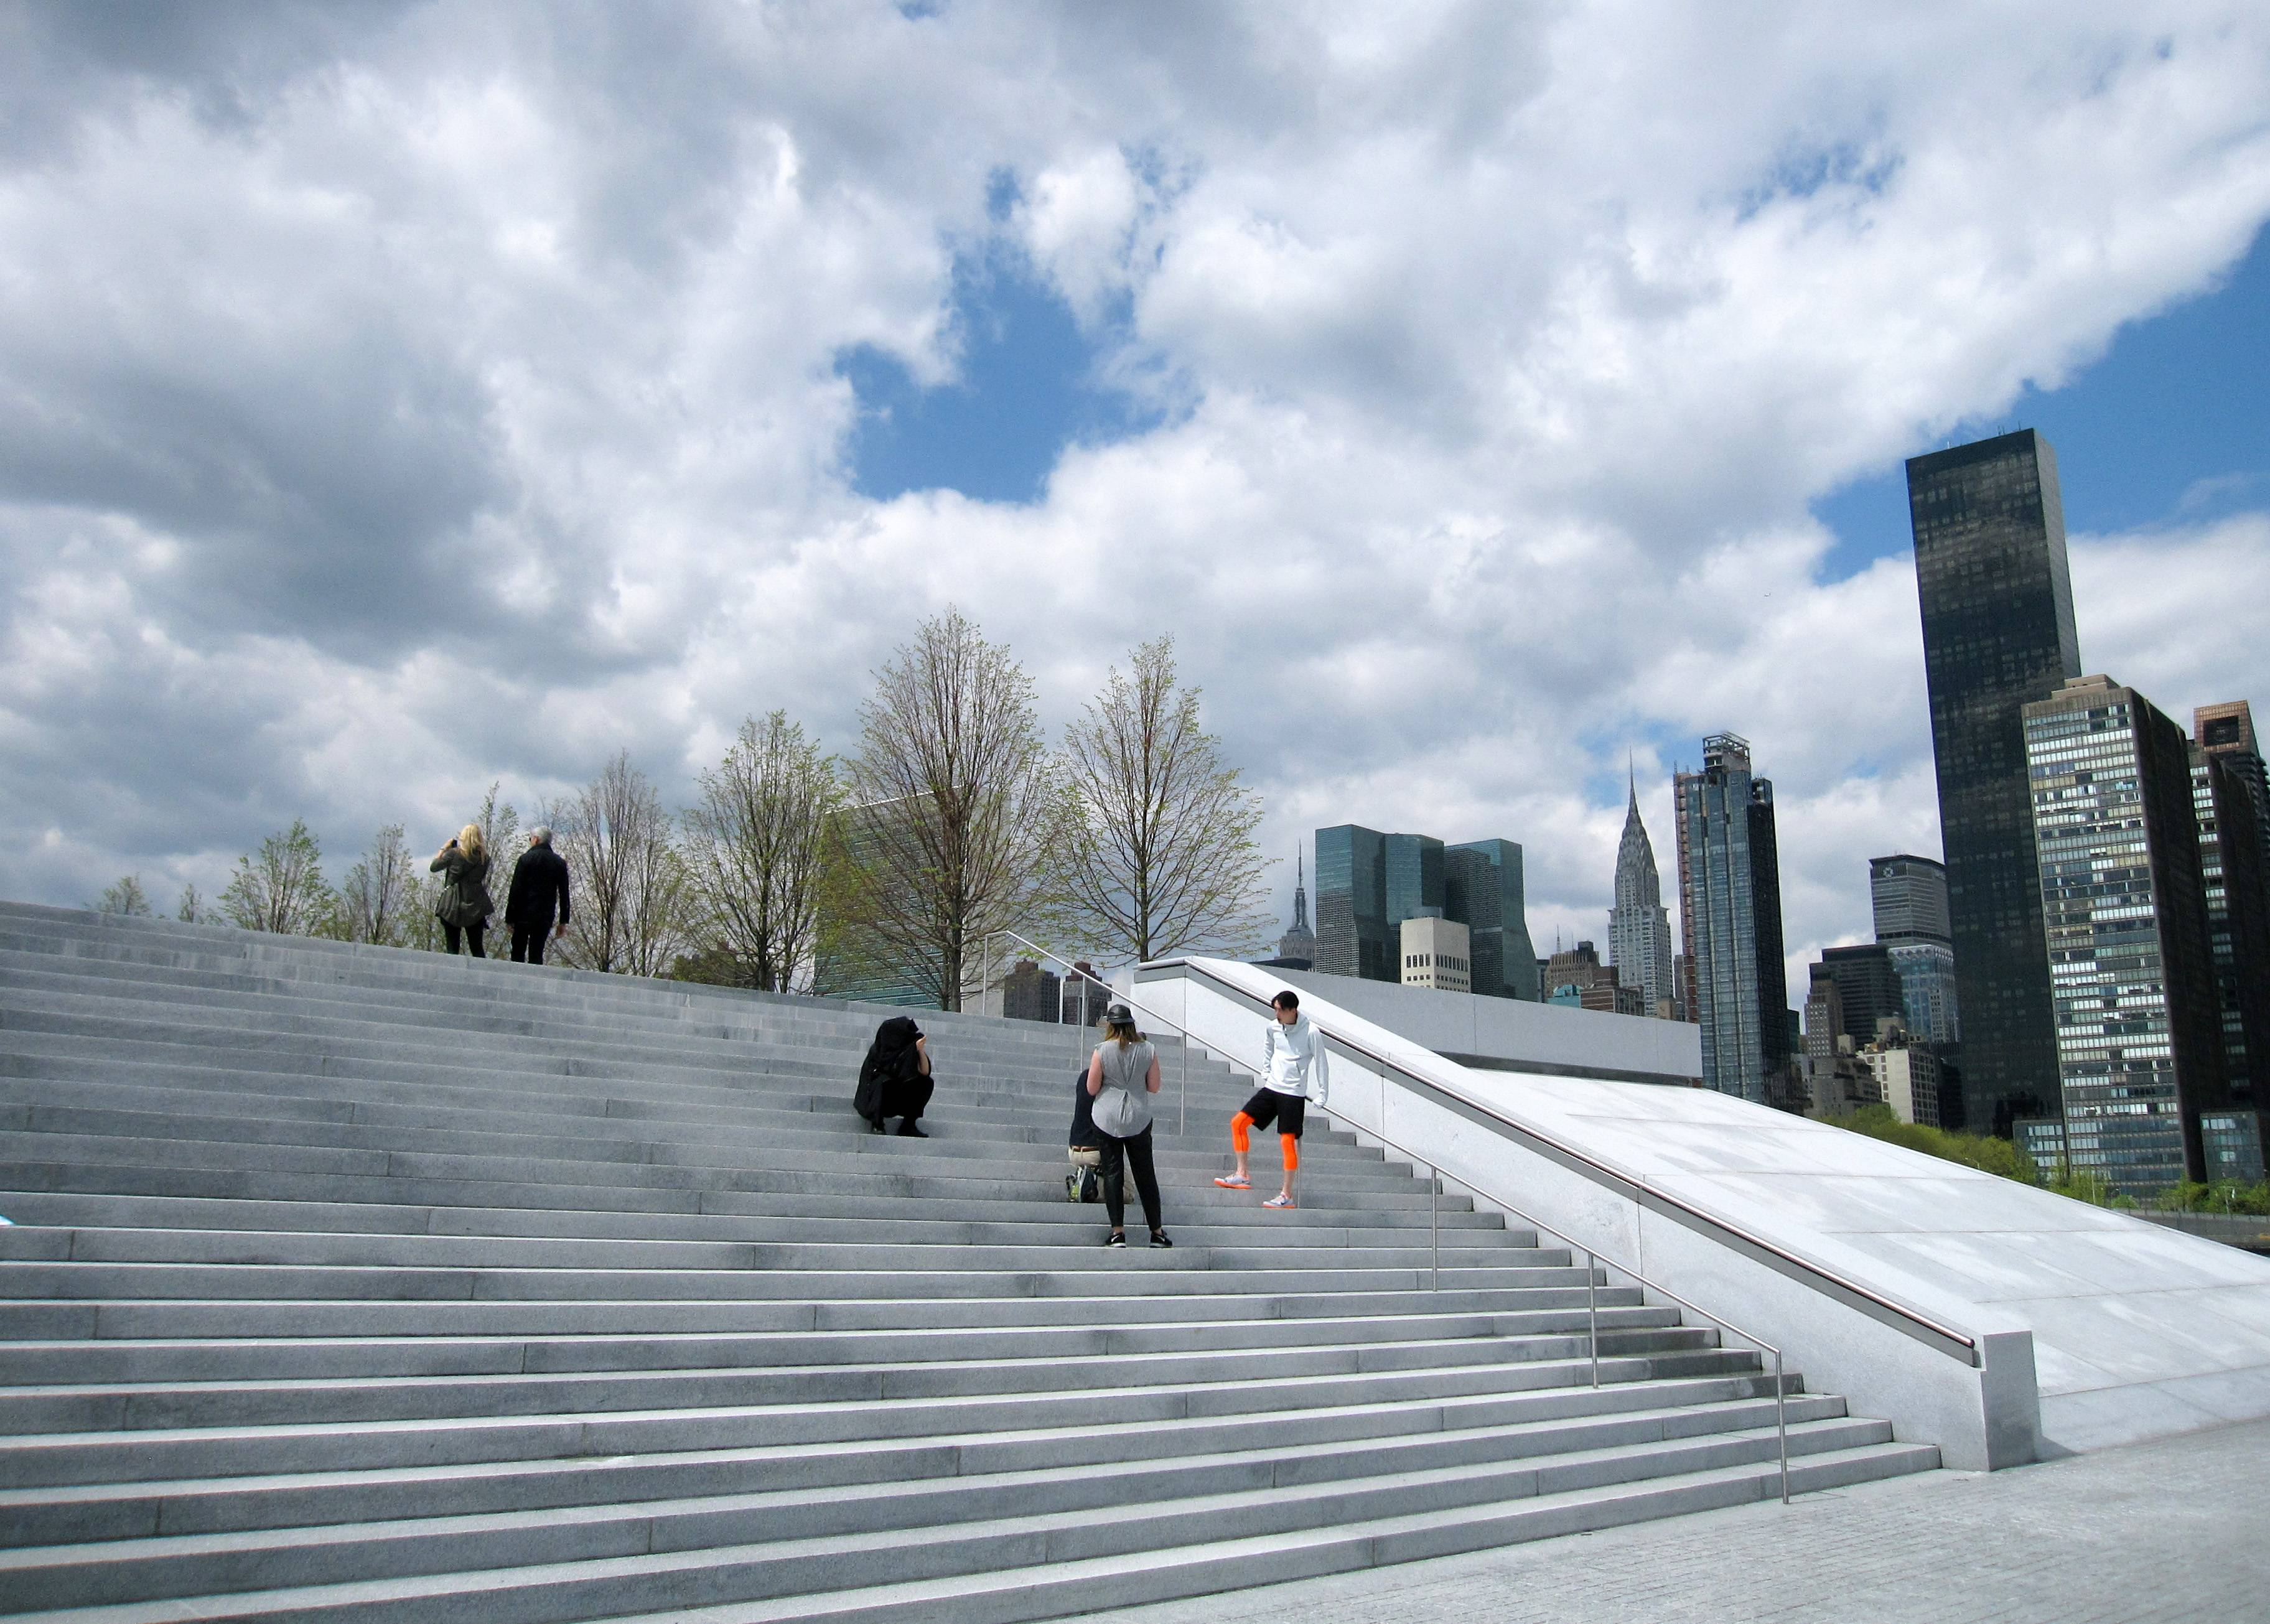 Visitors stand on the steps at Franklin D. Roosevelt Four Freedoms Park, located on Roosevelt Island in New York City. The park, designed by renowned architect Louis I. Kahn, is considered an architectural masterpiece and offers scenic views of the city.